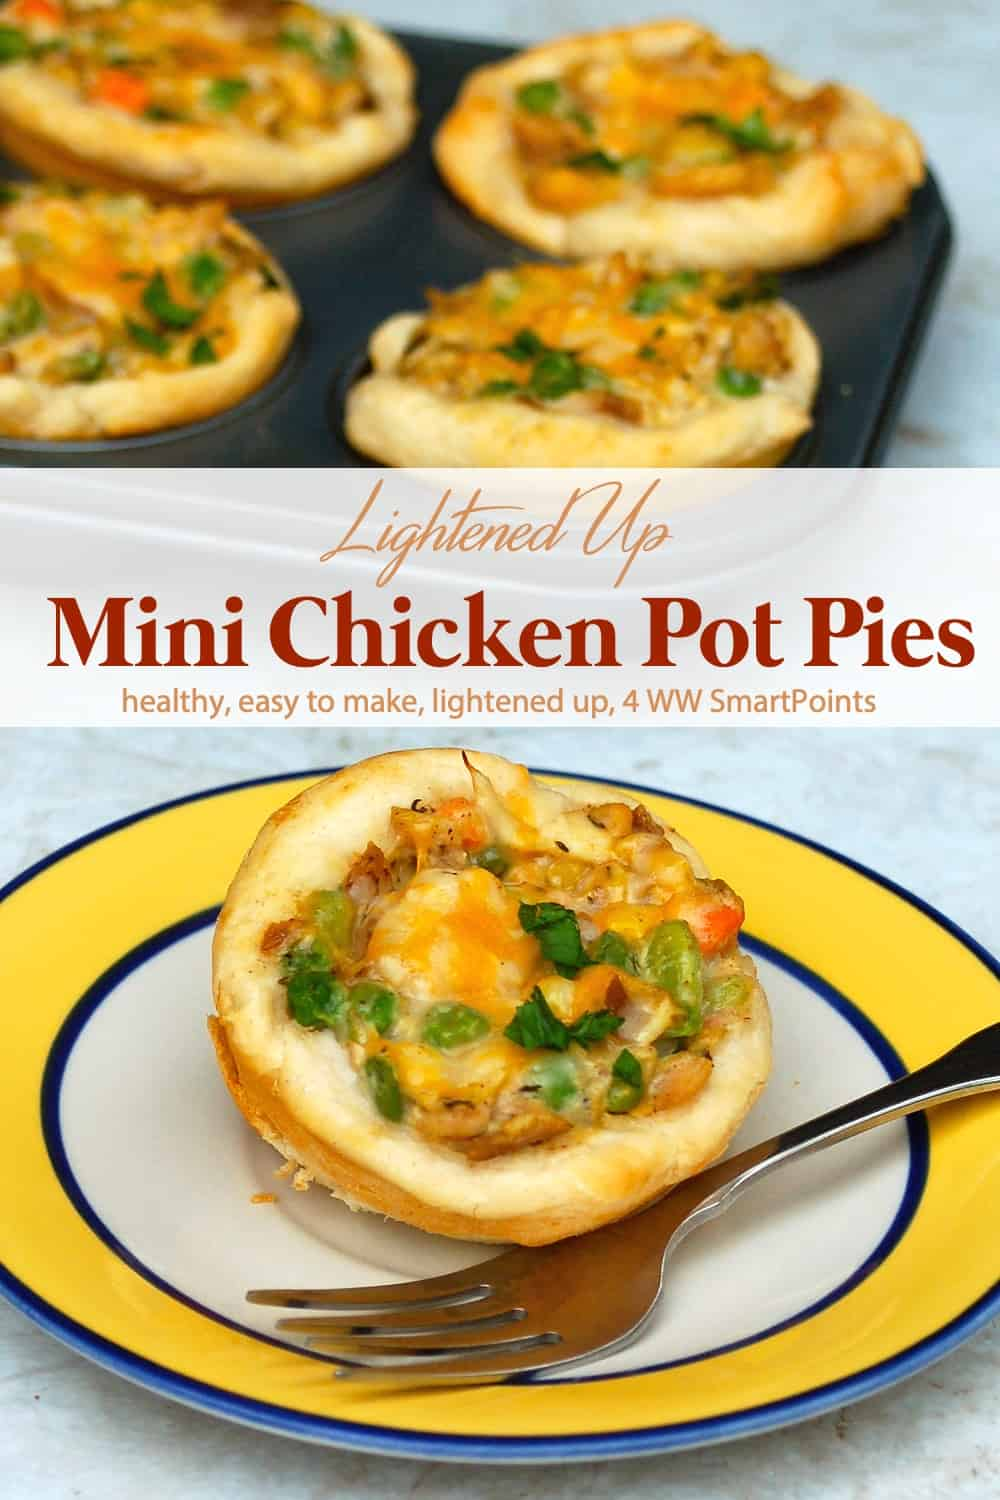 Simple, delicious and portion-controlled, these muffin pan Mini Chicken Pot Pies are a family-favorite quick + easy supper, or snack! #minichickenpotpies #muffintinchickenpotpie #chickenpotpie #potpie #chicken #easyhealthyrecipes